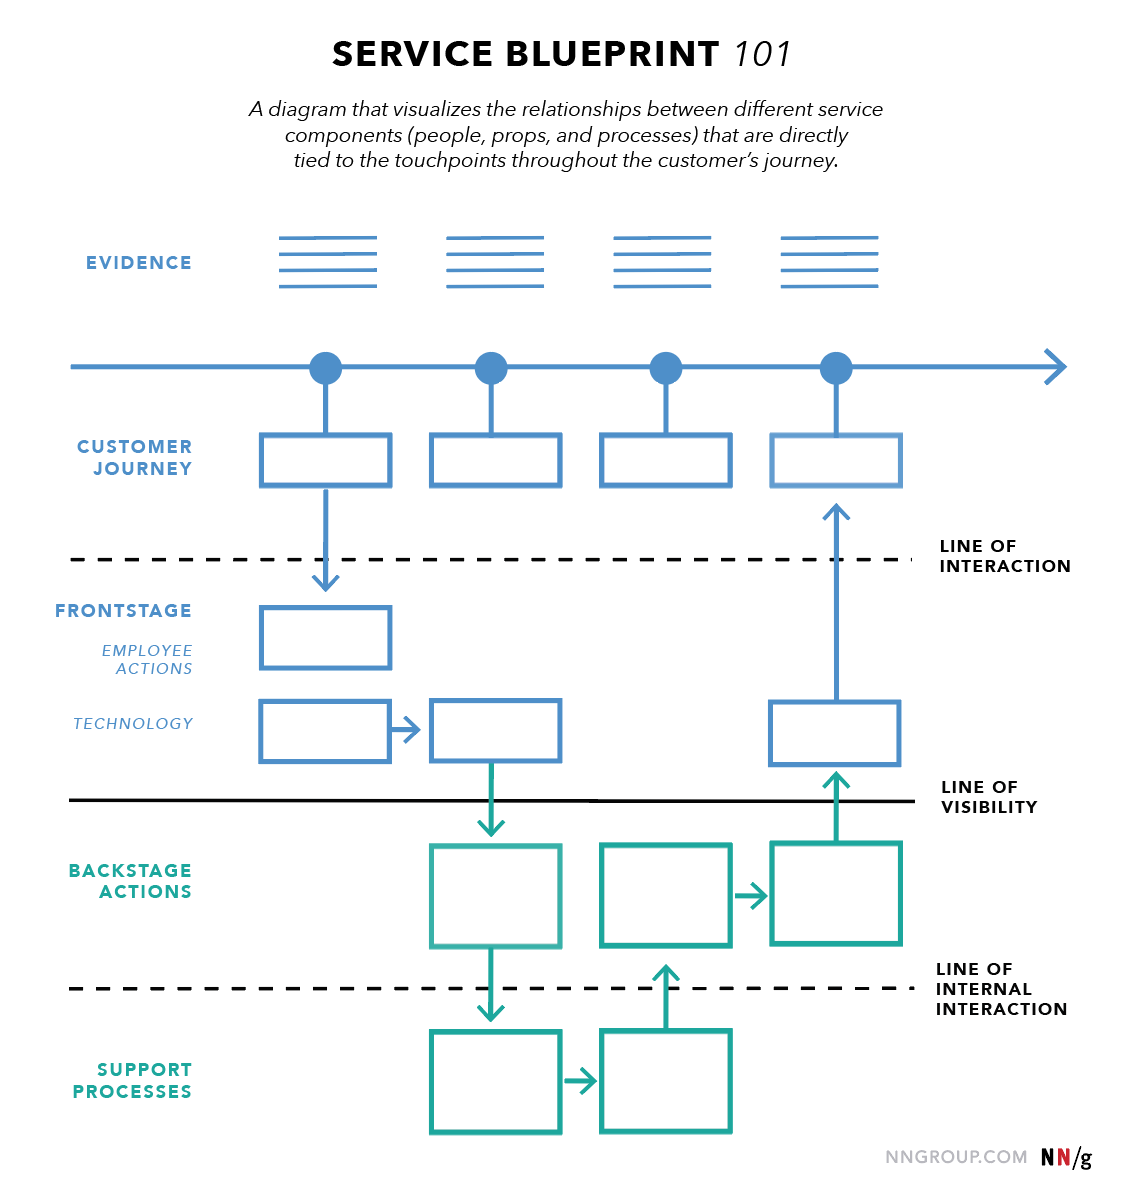 nng service blueprint 101